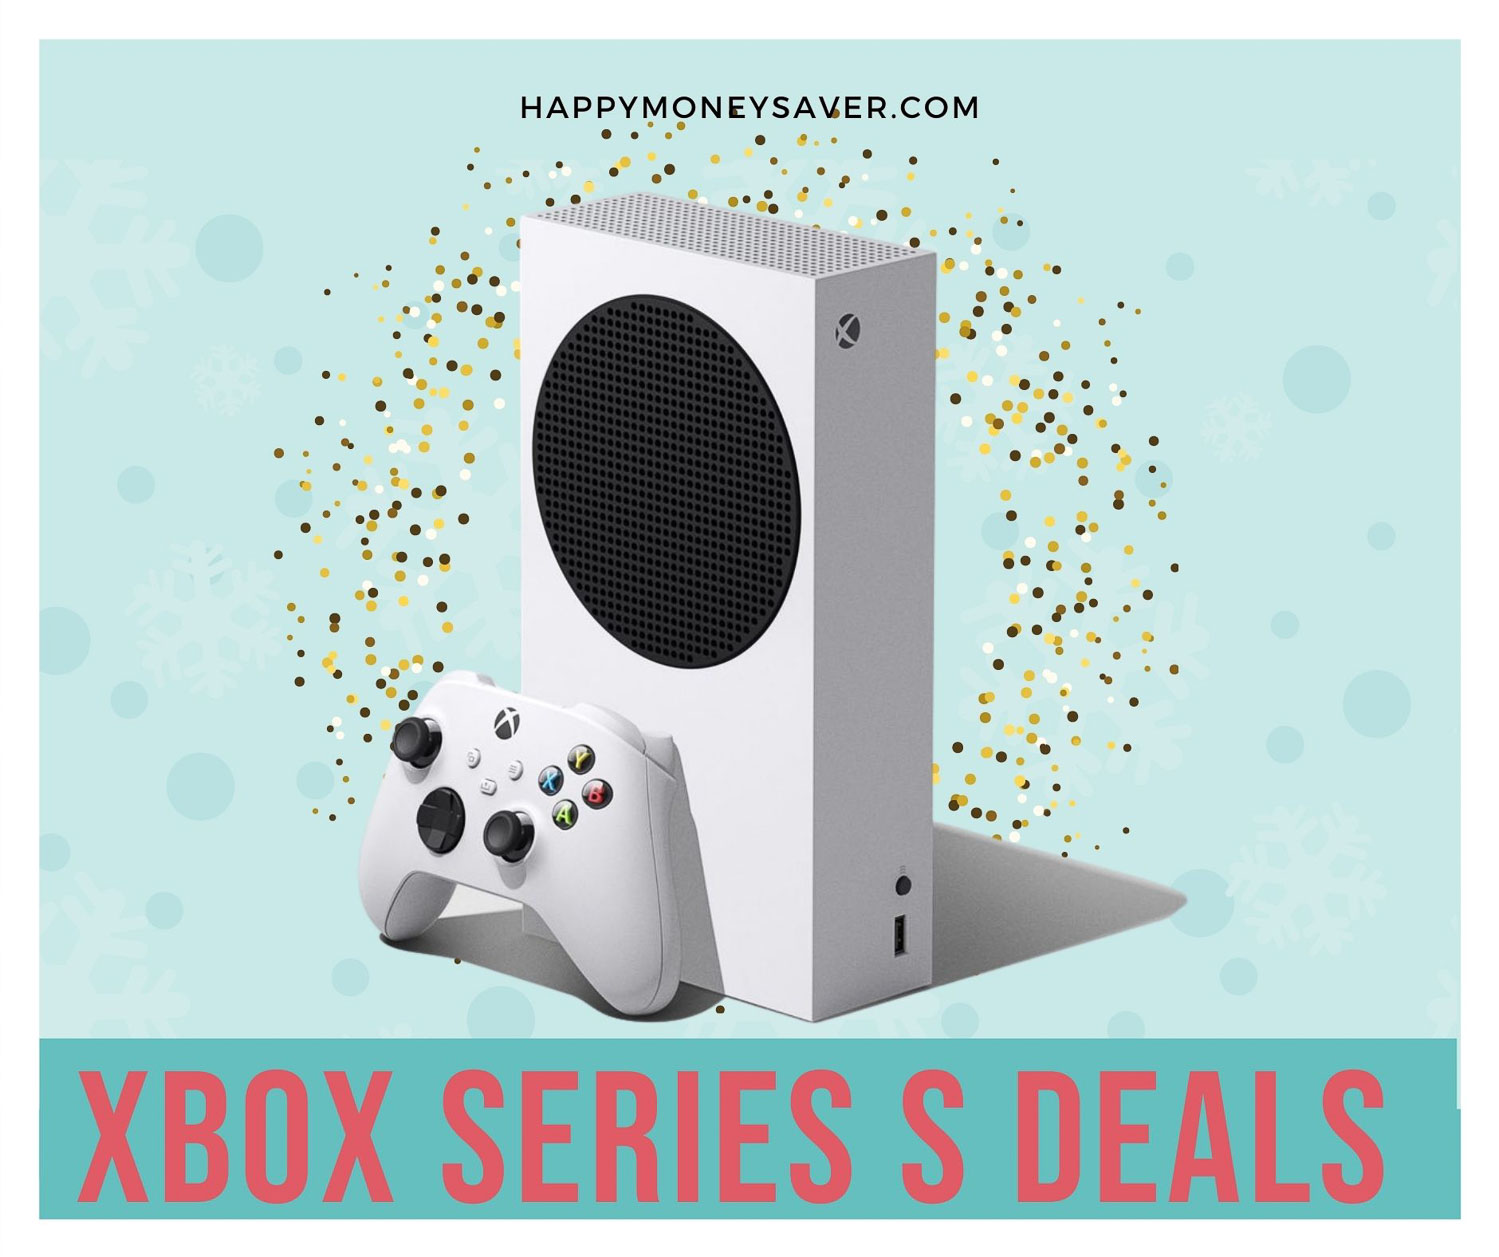 Xbox Series S Black Friday deals 2020 graphic with the new white series S with confetti behind it.